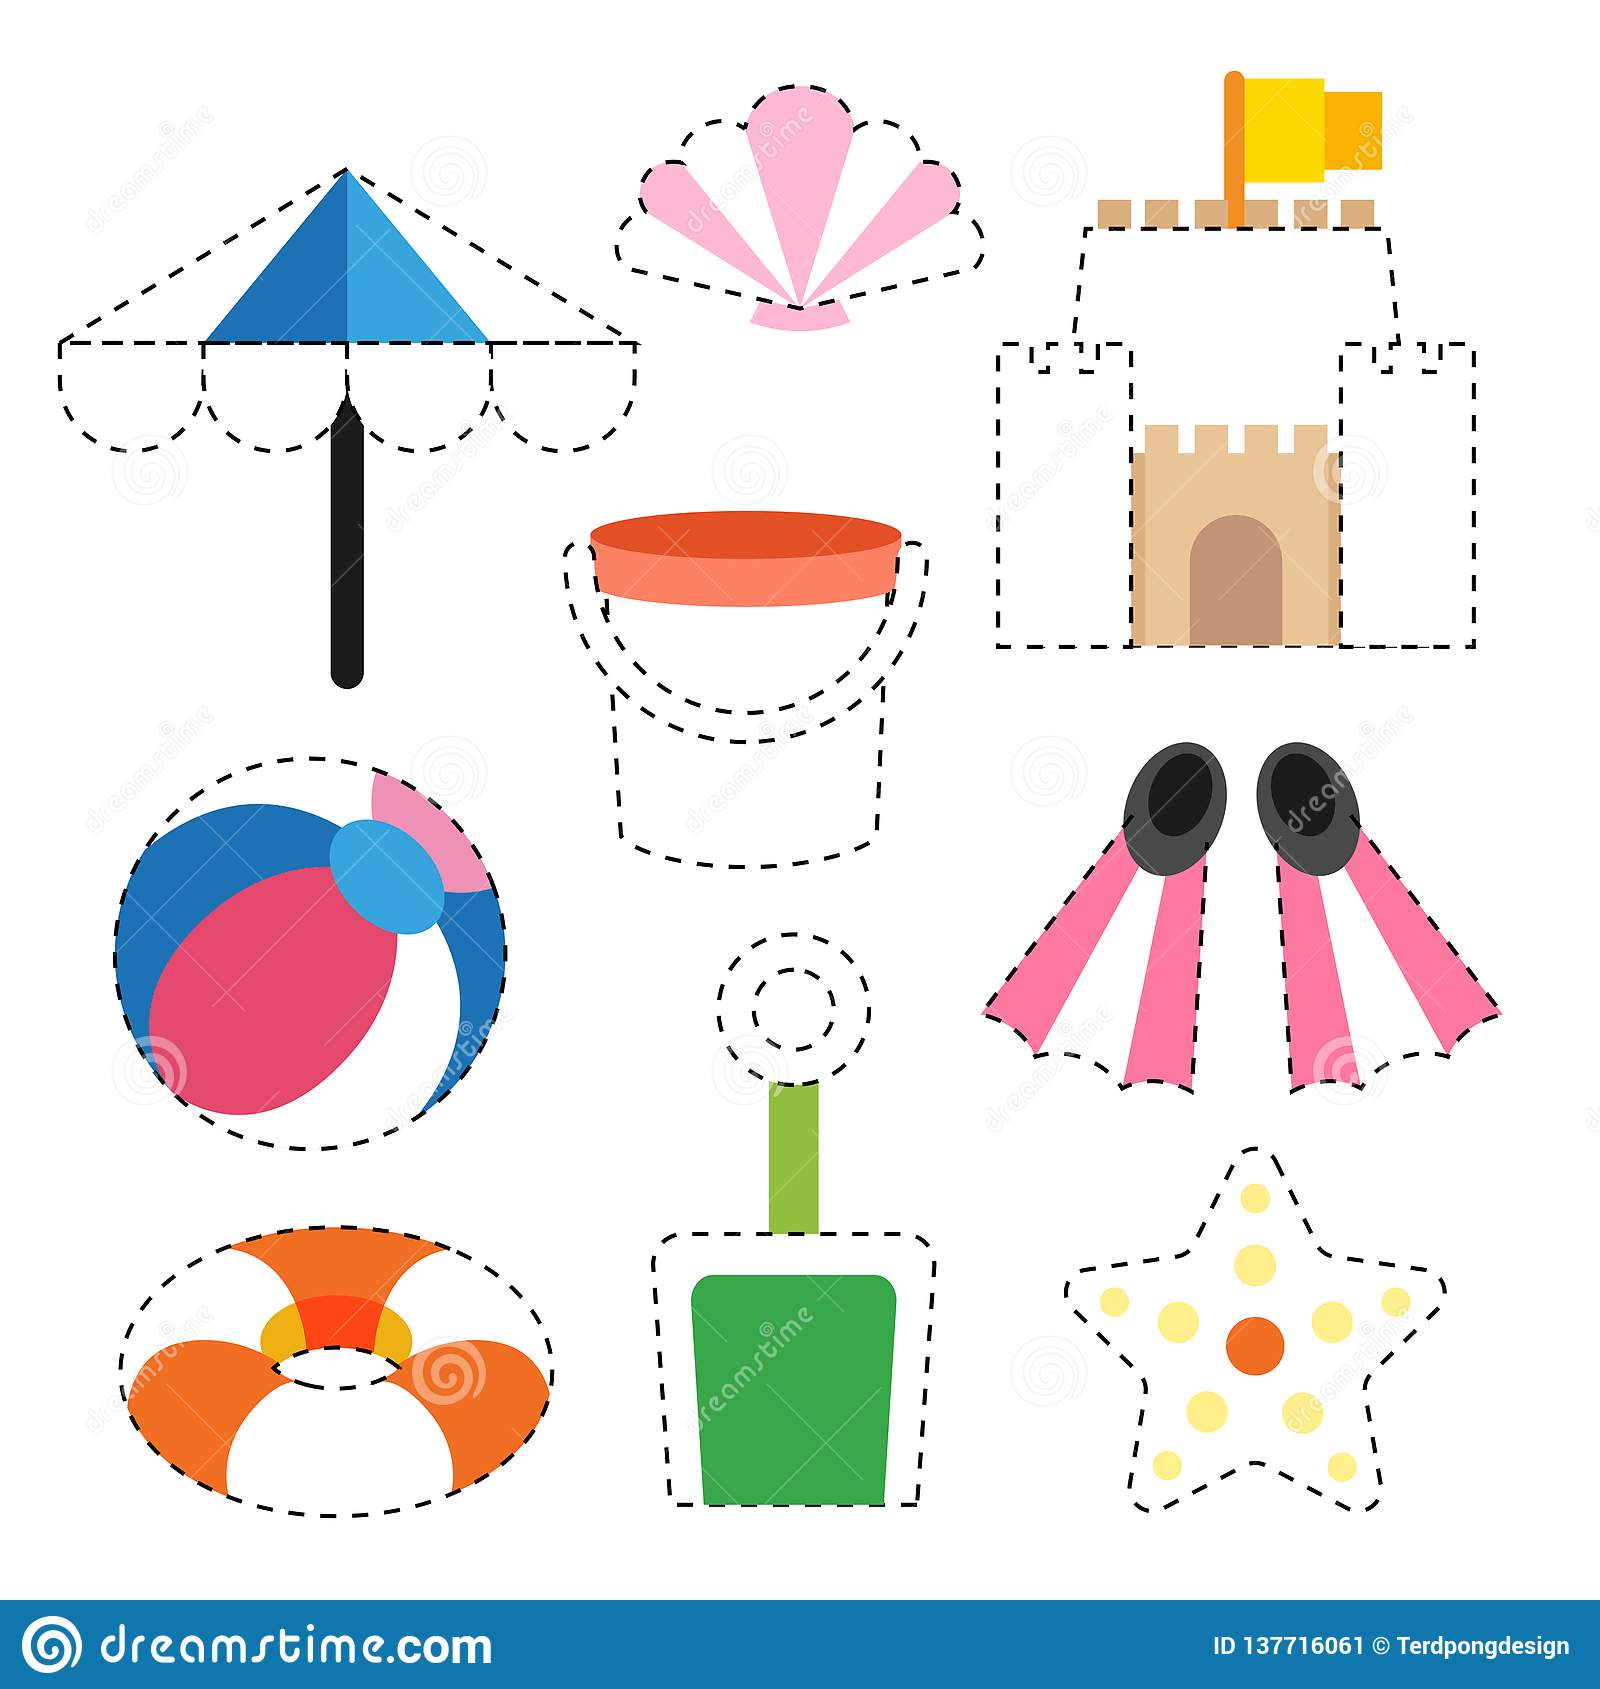 Toy Worksheet Vector Design Stock Vector